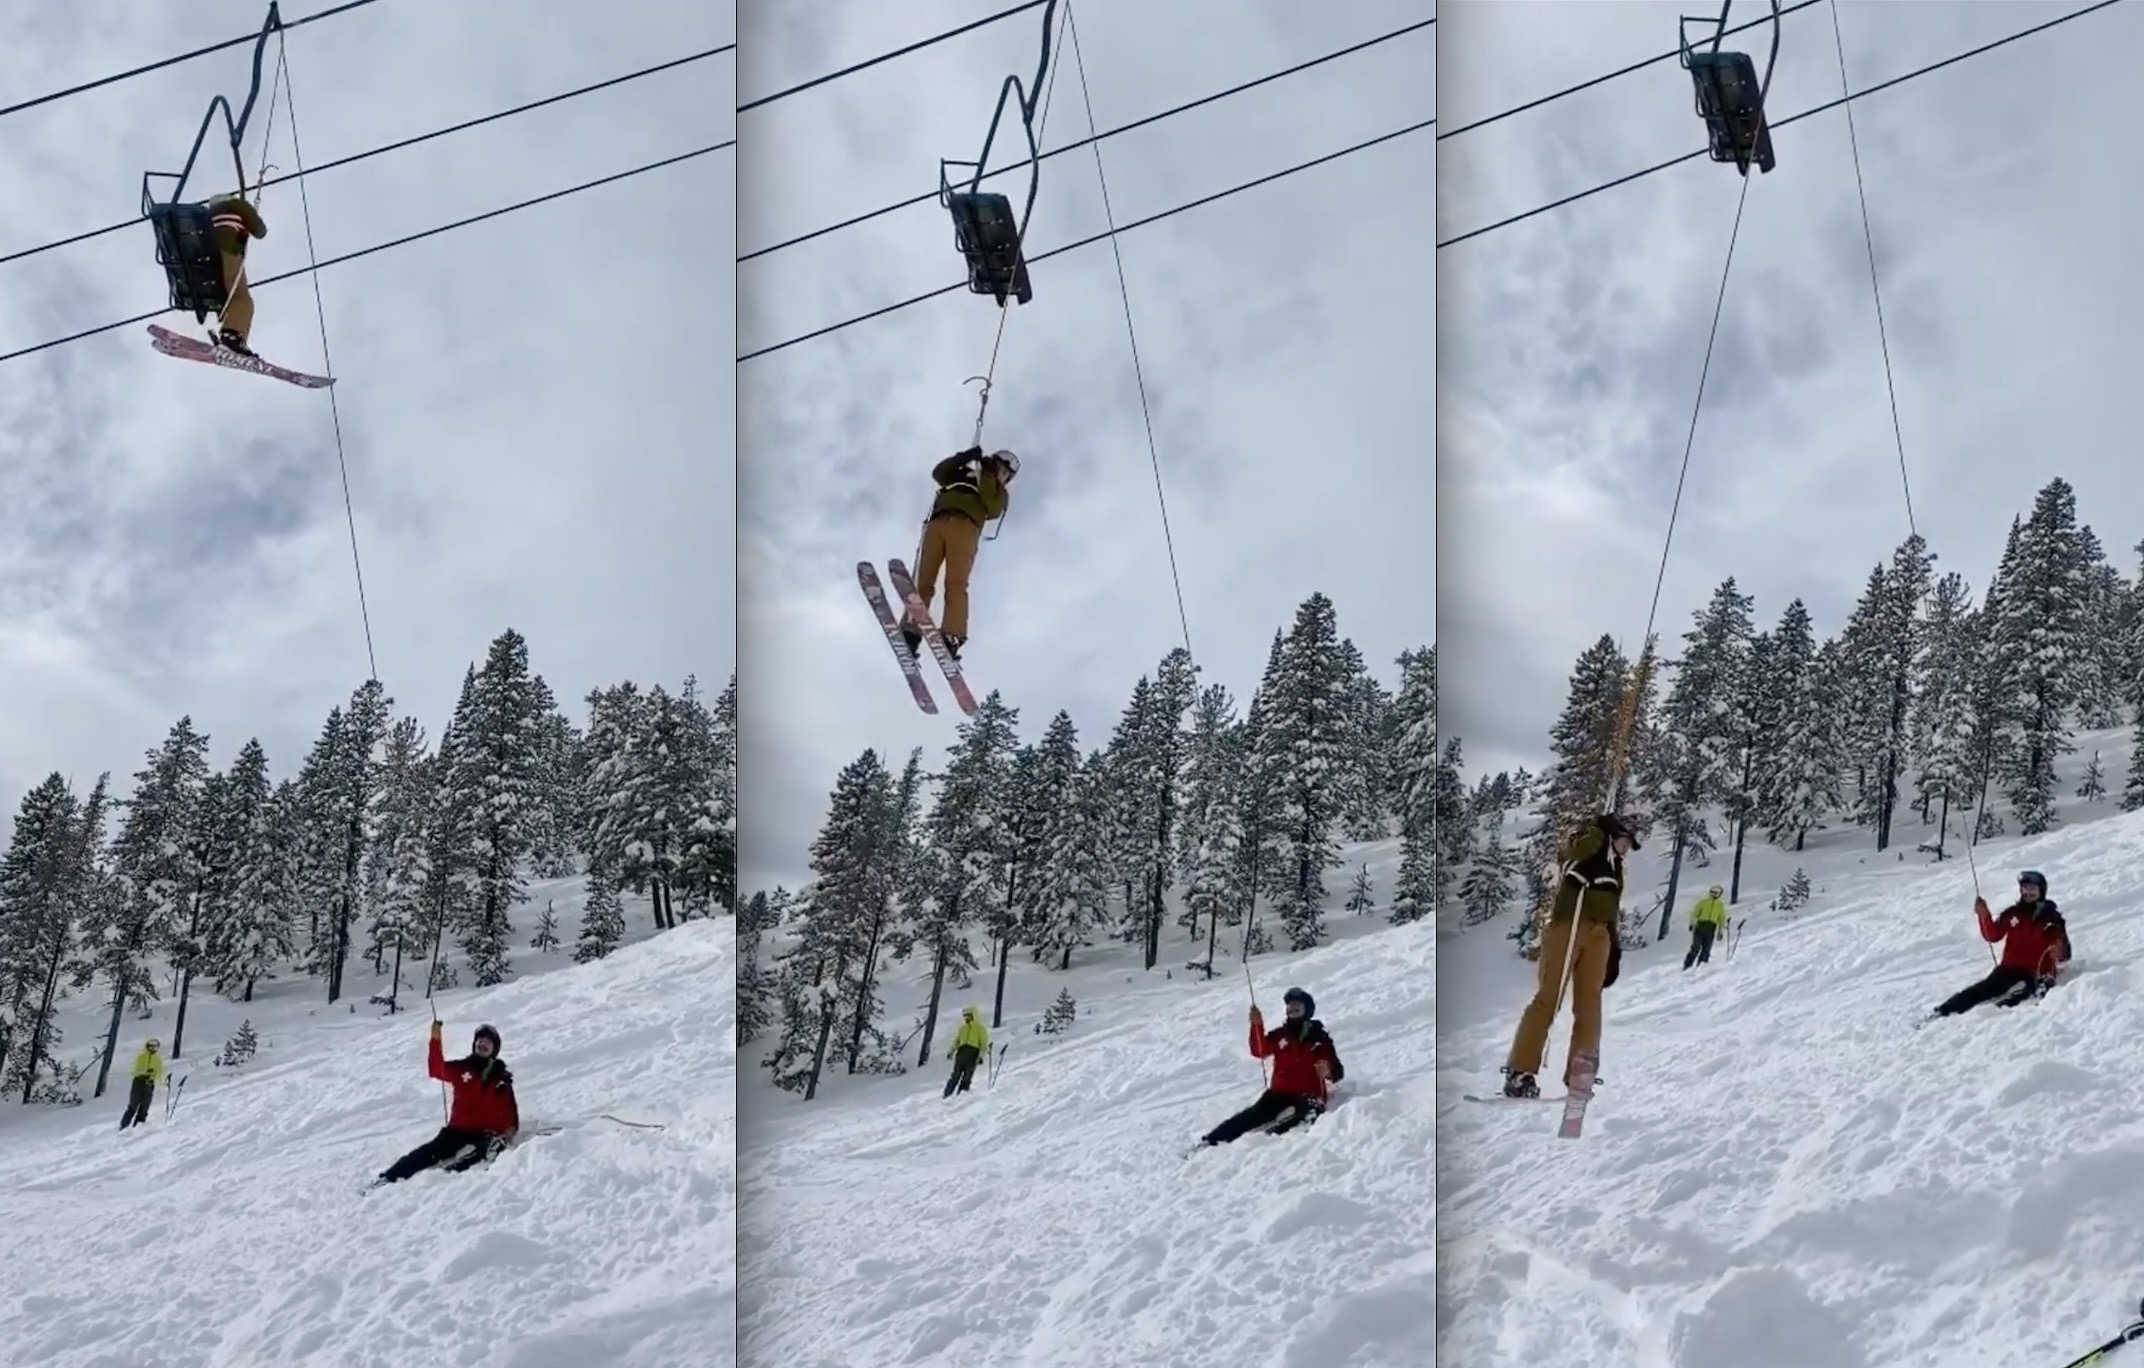 VIDEO: Chairlift Evacuation After Montana Snowbowl ...